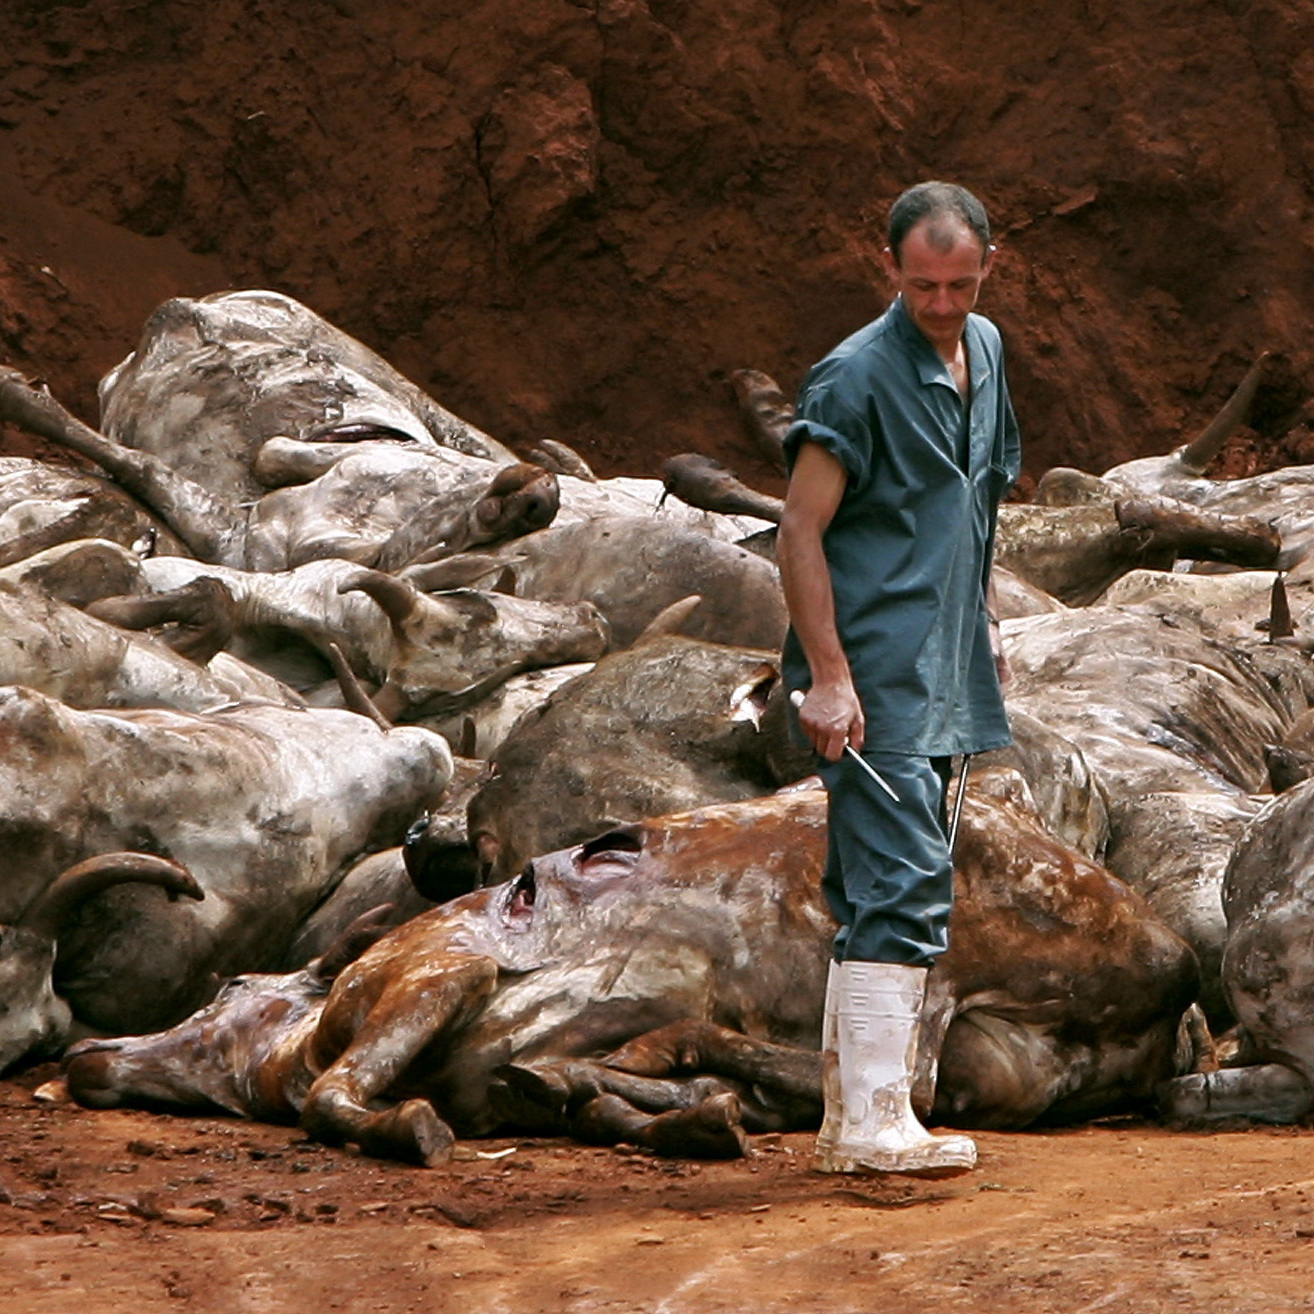 A butcher in Brazil stands by several dozen cattle slaughtered in 2006 to contain an outbreak of highly contagious foot-and-mouth disease.